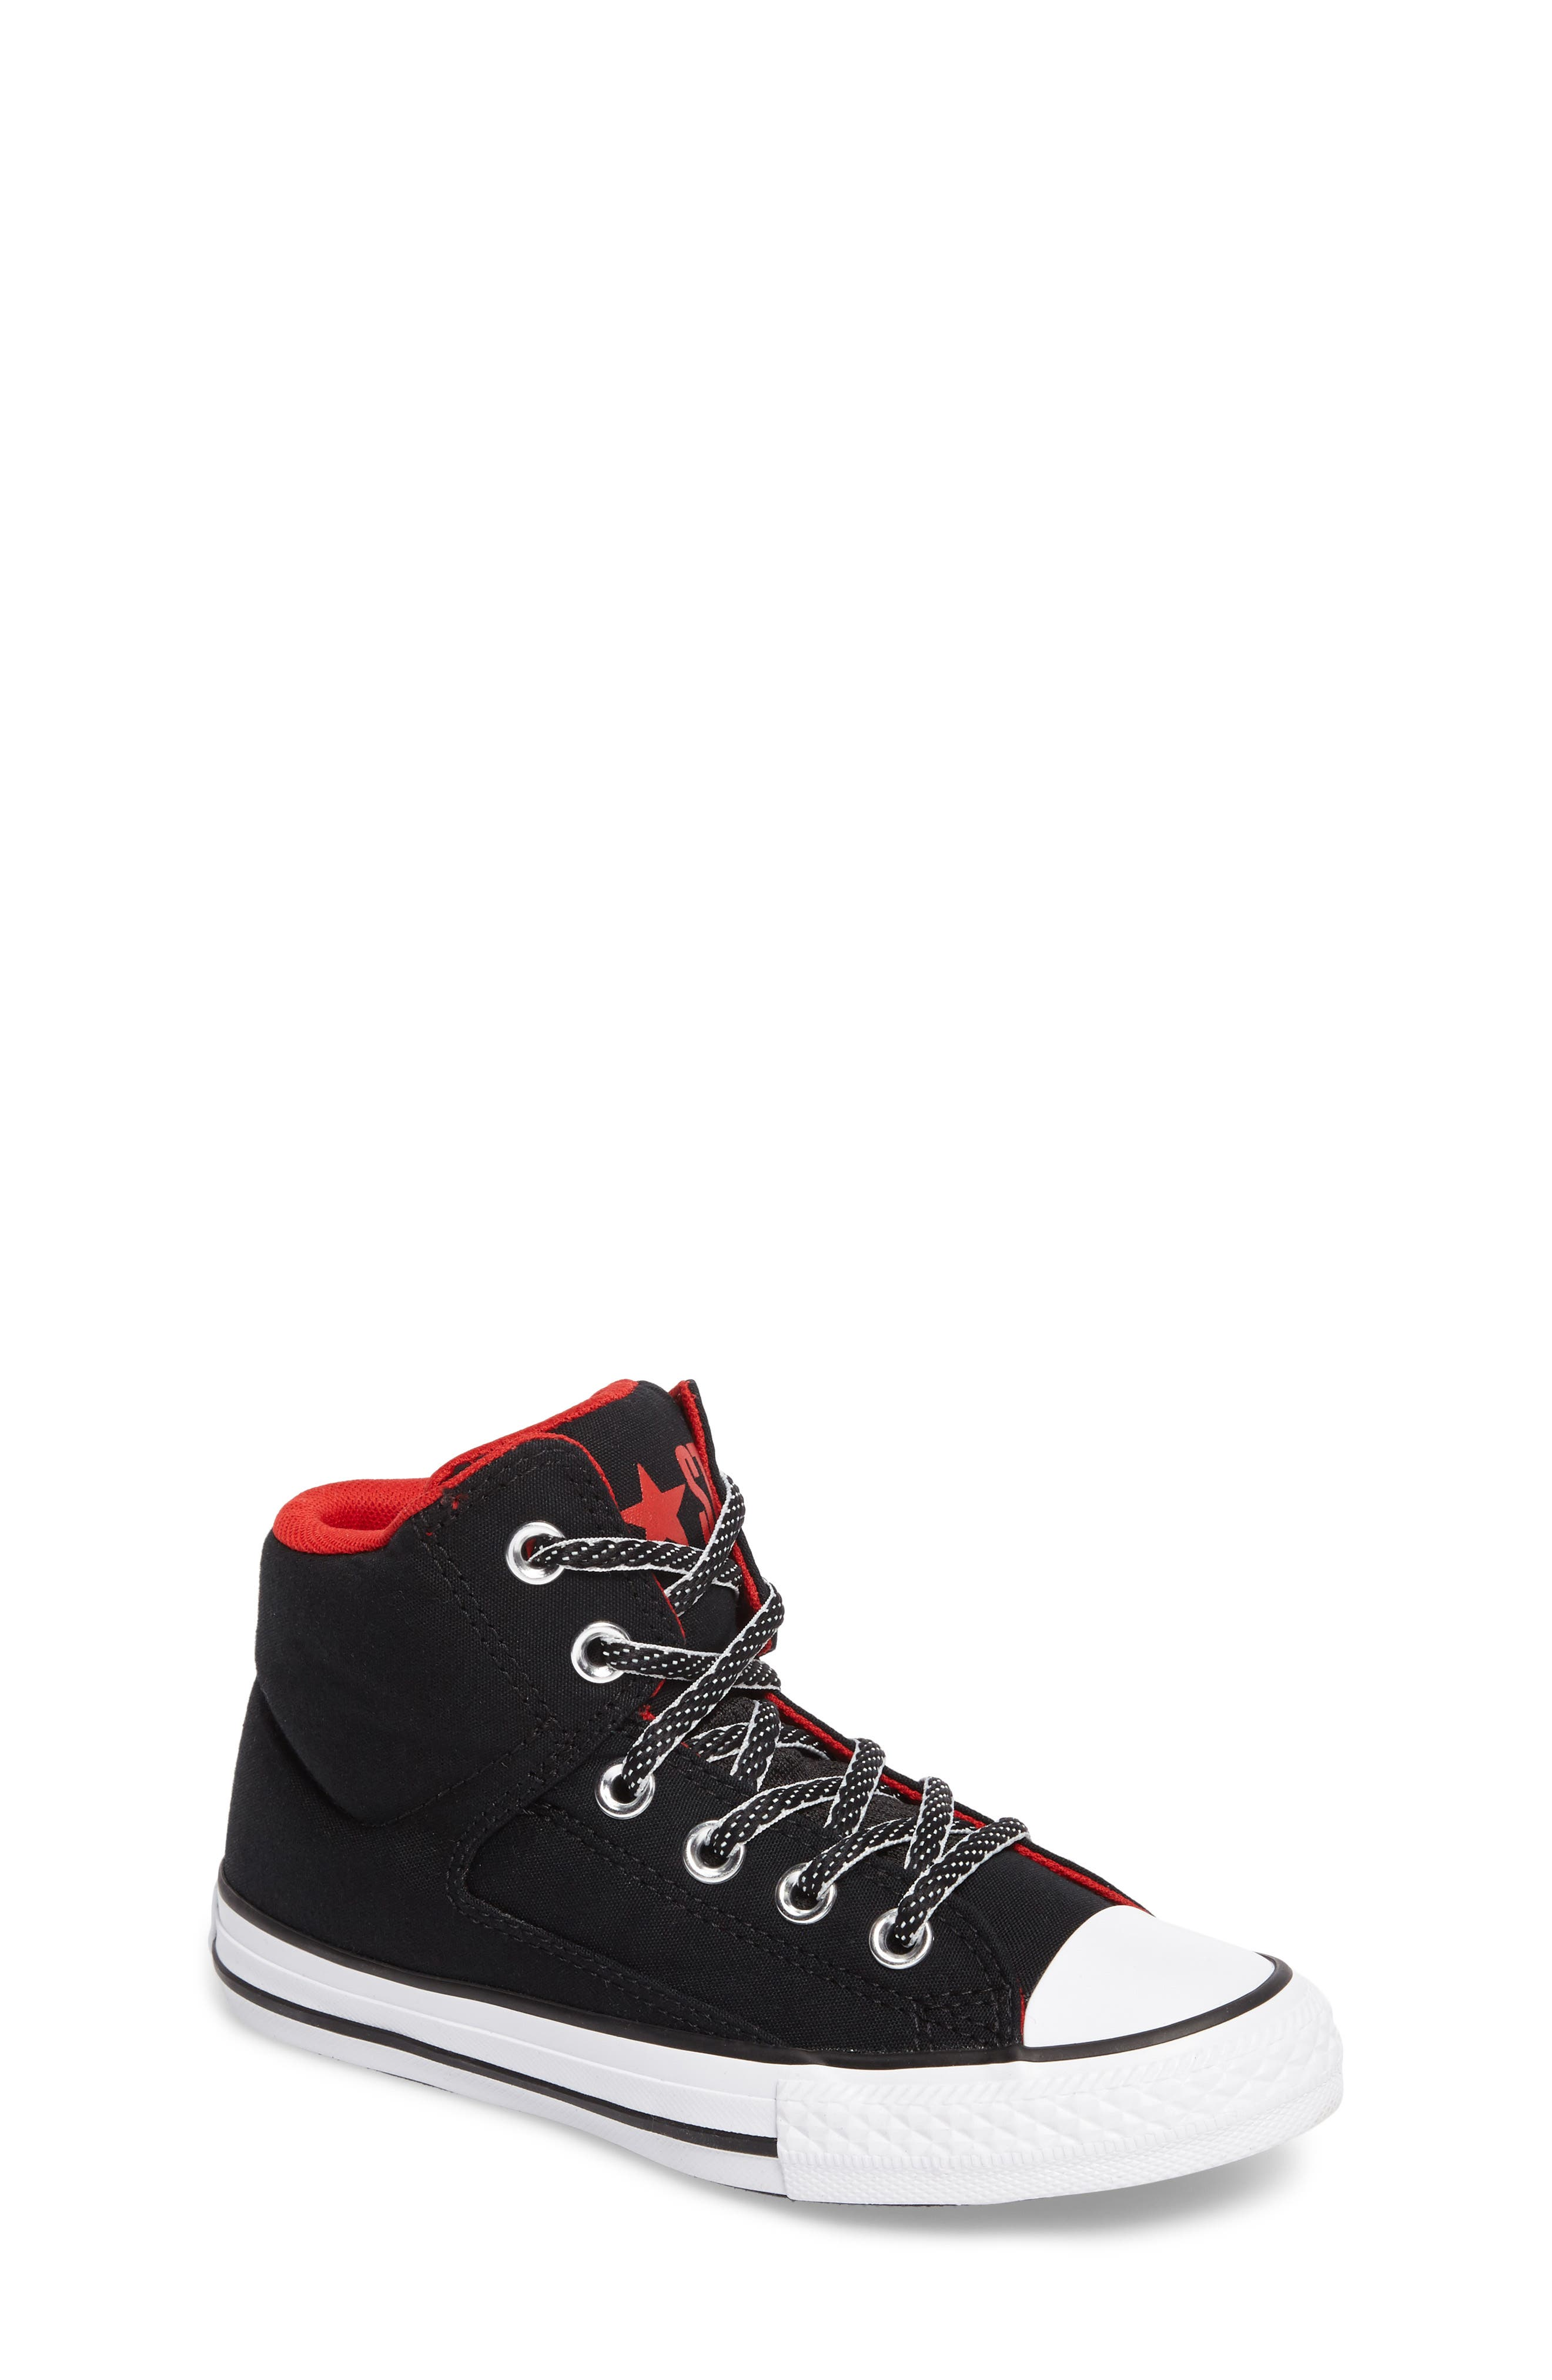 Chuck Taylor<sup>®</sup> All Star<sup>®</sup> High Street High Top Sneaker,                         Main,                         color, Black Canvas